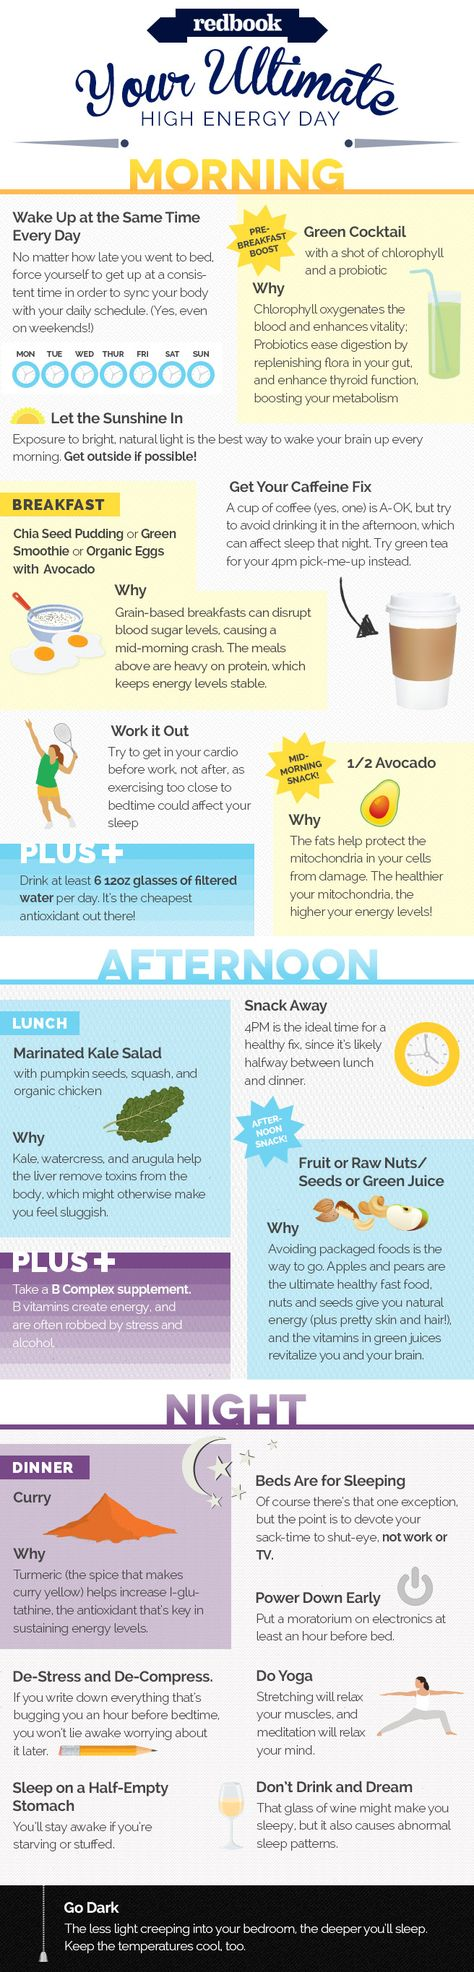 Good habits to get into to keep energy up and good snacks to balance out the day. #Nutrition